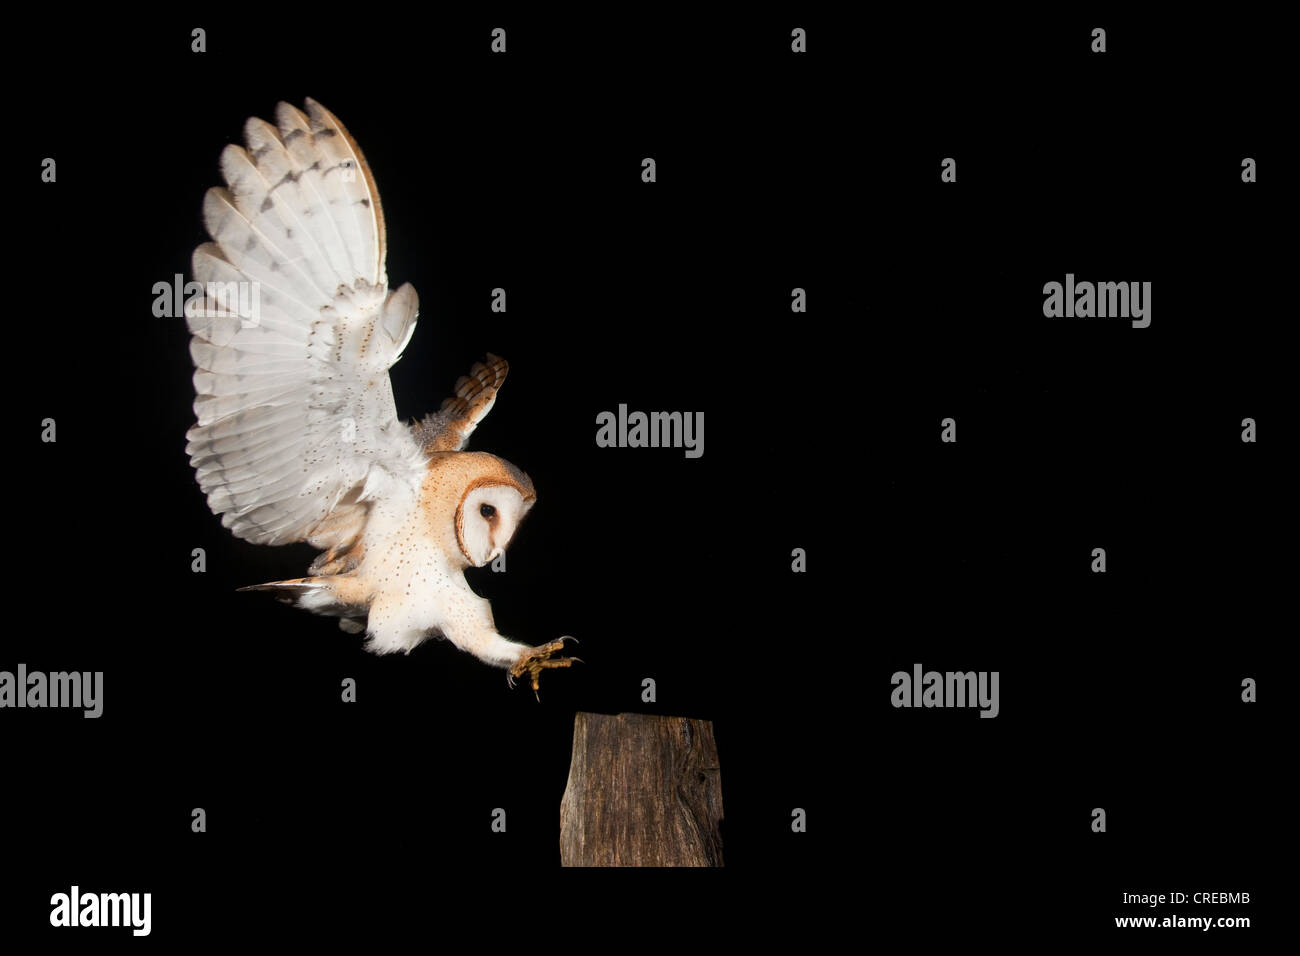 Barn Owl (Tyto alba) during approach of a fence post, Vulkaneifel district, Rhineland-Palatinate, Germany, Europe - Stock Image